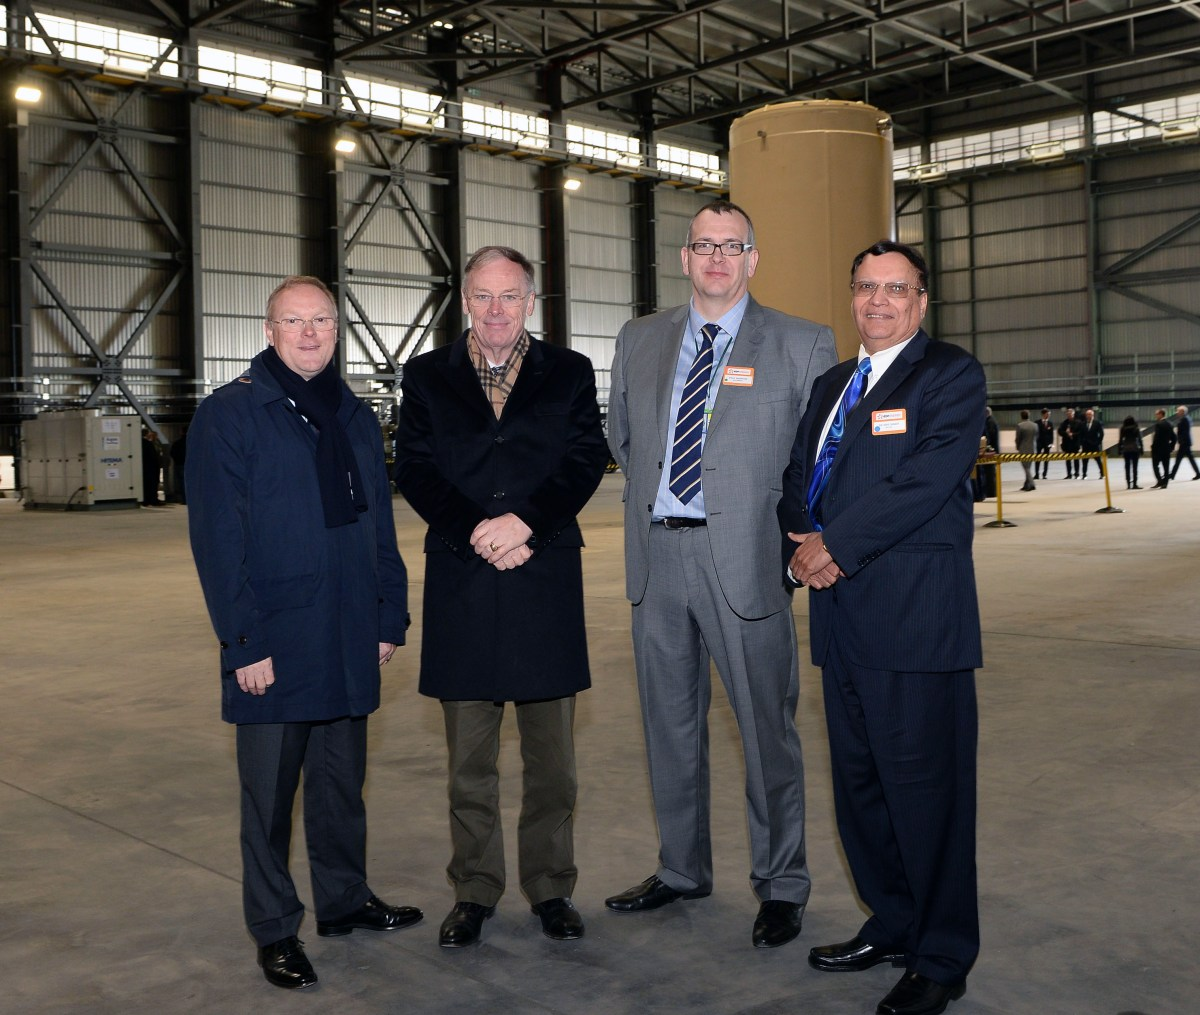 Dry Fuel Store Opening, March 31, 2016 From Left to Right:Stuart Crooks, Managing Director – Generation, EDF Energy; Vincent de Rivaz, CEO, EDF Energy; Paul Morton, Sizewell B Station Director, EDF Energy; and Dr. Kris Singh, President and CEO, Holtec International